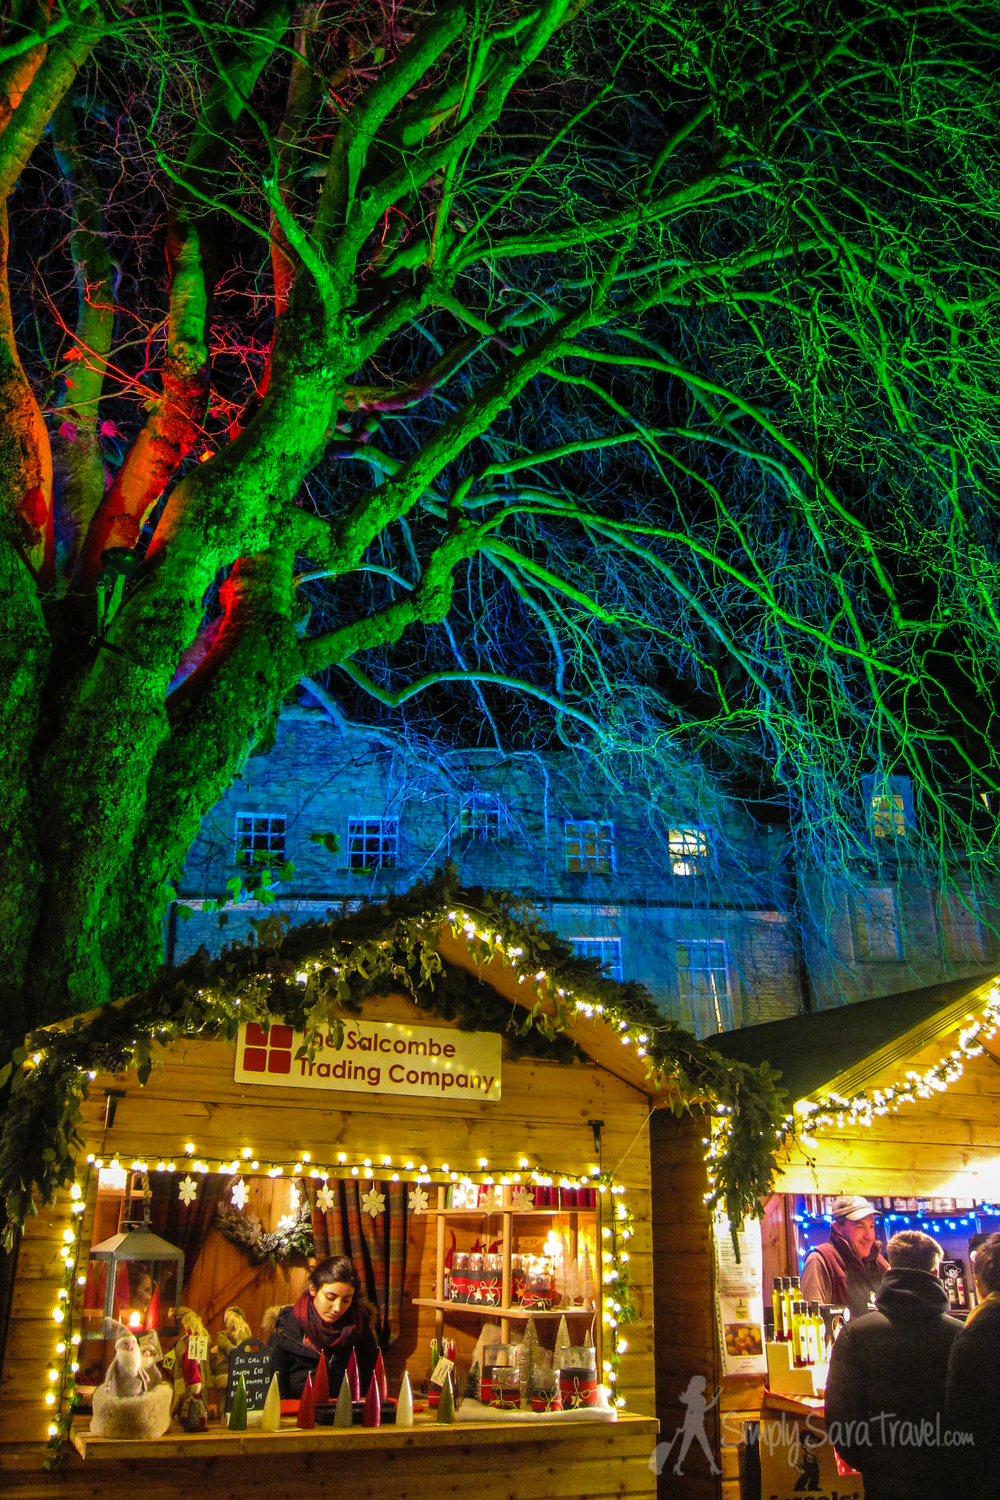 Stands at the Christmas market in Bath, England